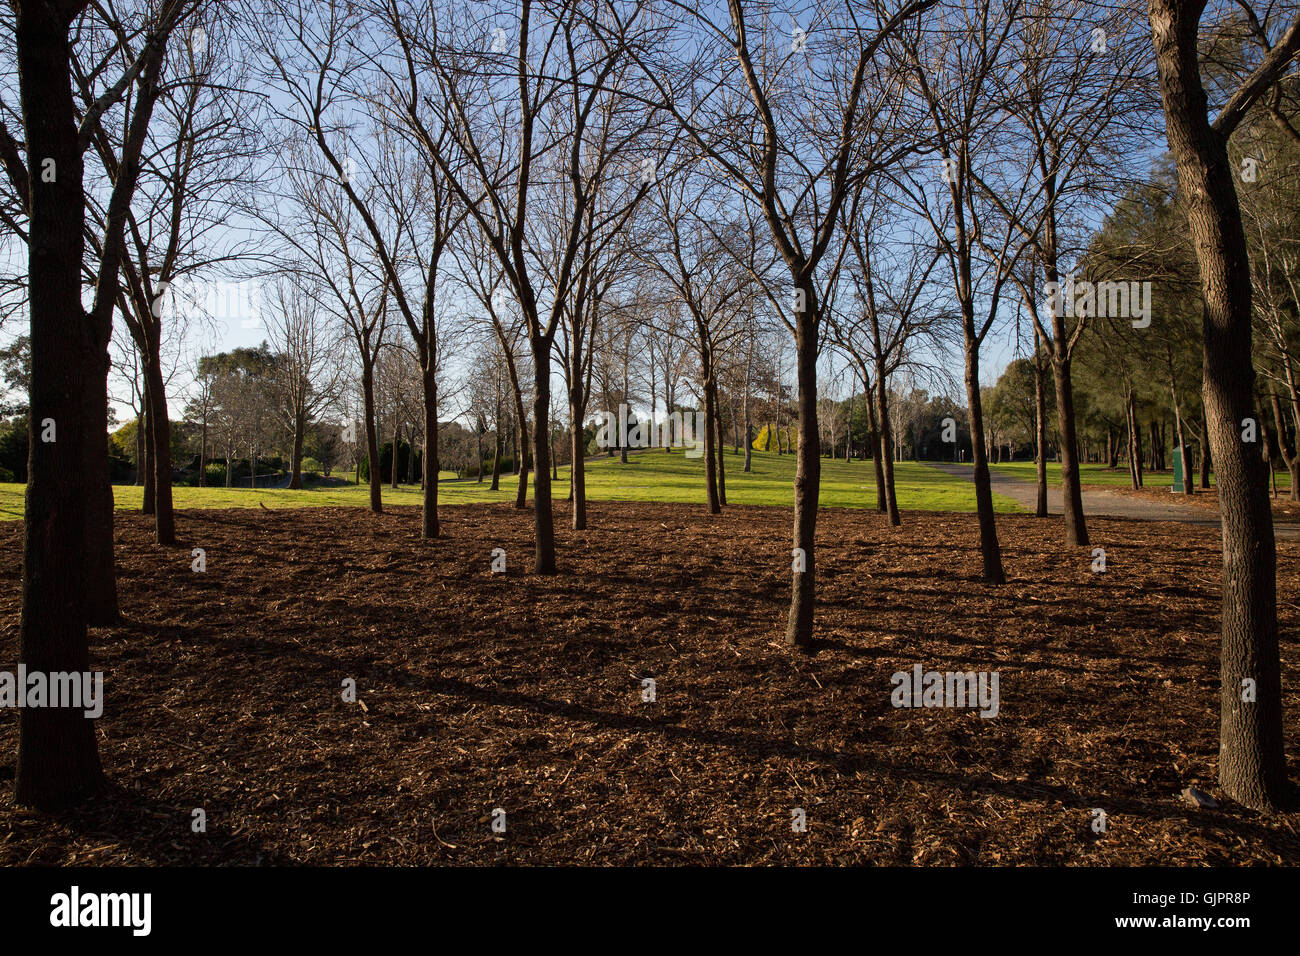 Trees in Nurragingy Reserve Blacktown - Stock Image